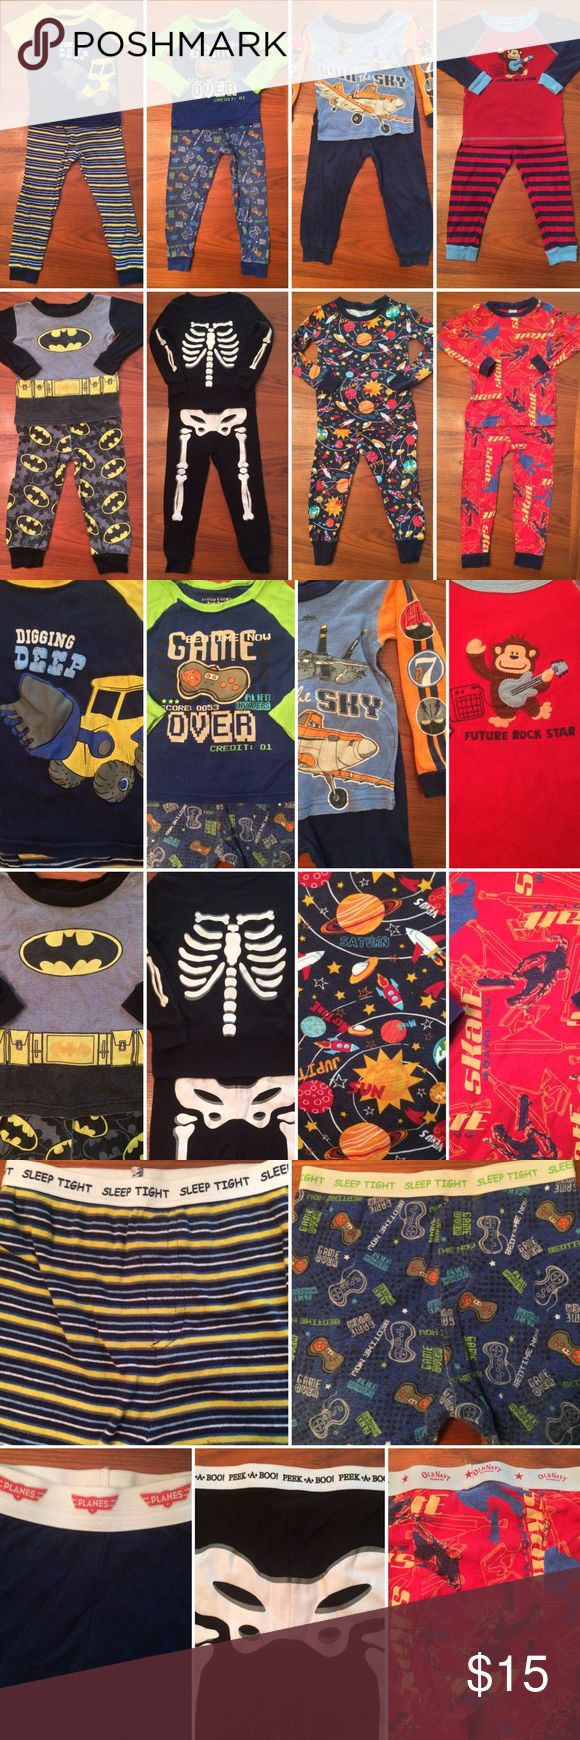 """Baby/Toddler Boy Pajamas Size 24 Months/2T GOOD USED CONDITION • No Stains, Holes, etc. • Fading & Piling (on some sets) • Will add a short-sleeved Lightning McQueen from """"Cars"""" PJ Set (GREAT CONDITION) & a couple pair of PJ pants, if wanted.   1. Only Short-Sleeved Set - Faded Glory Size 24 Months 2. Faded Glory - 24 Months 3. Disney Planes - Size 24 Months 4. Child of Mine by Carter's - Size 24 Months 5. Batman - Size 24 Months 6. Old Navy - 24 Months 7. Children's Place - Size 2  8. Old…"""